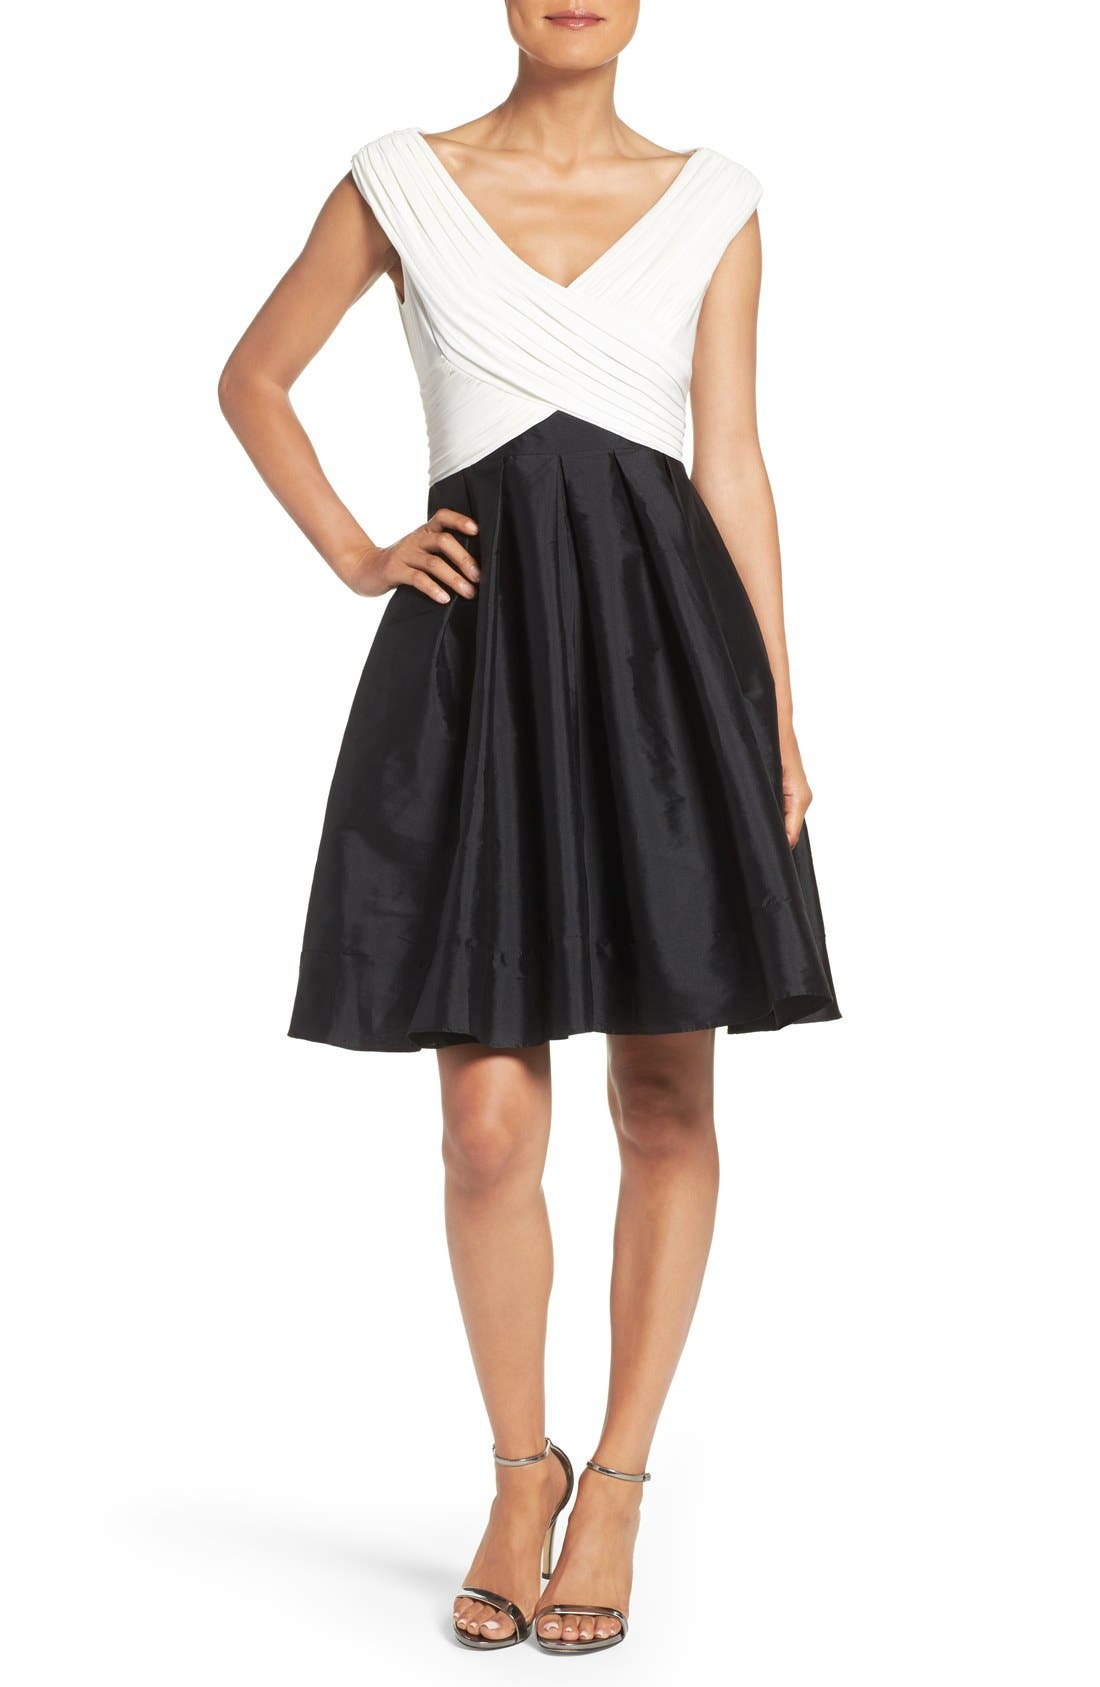 Main Image - Adrianna Papell Taffeta Fit & Flare Dress (Regular & Petite)